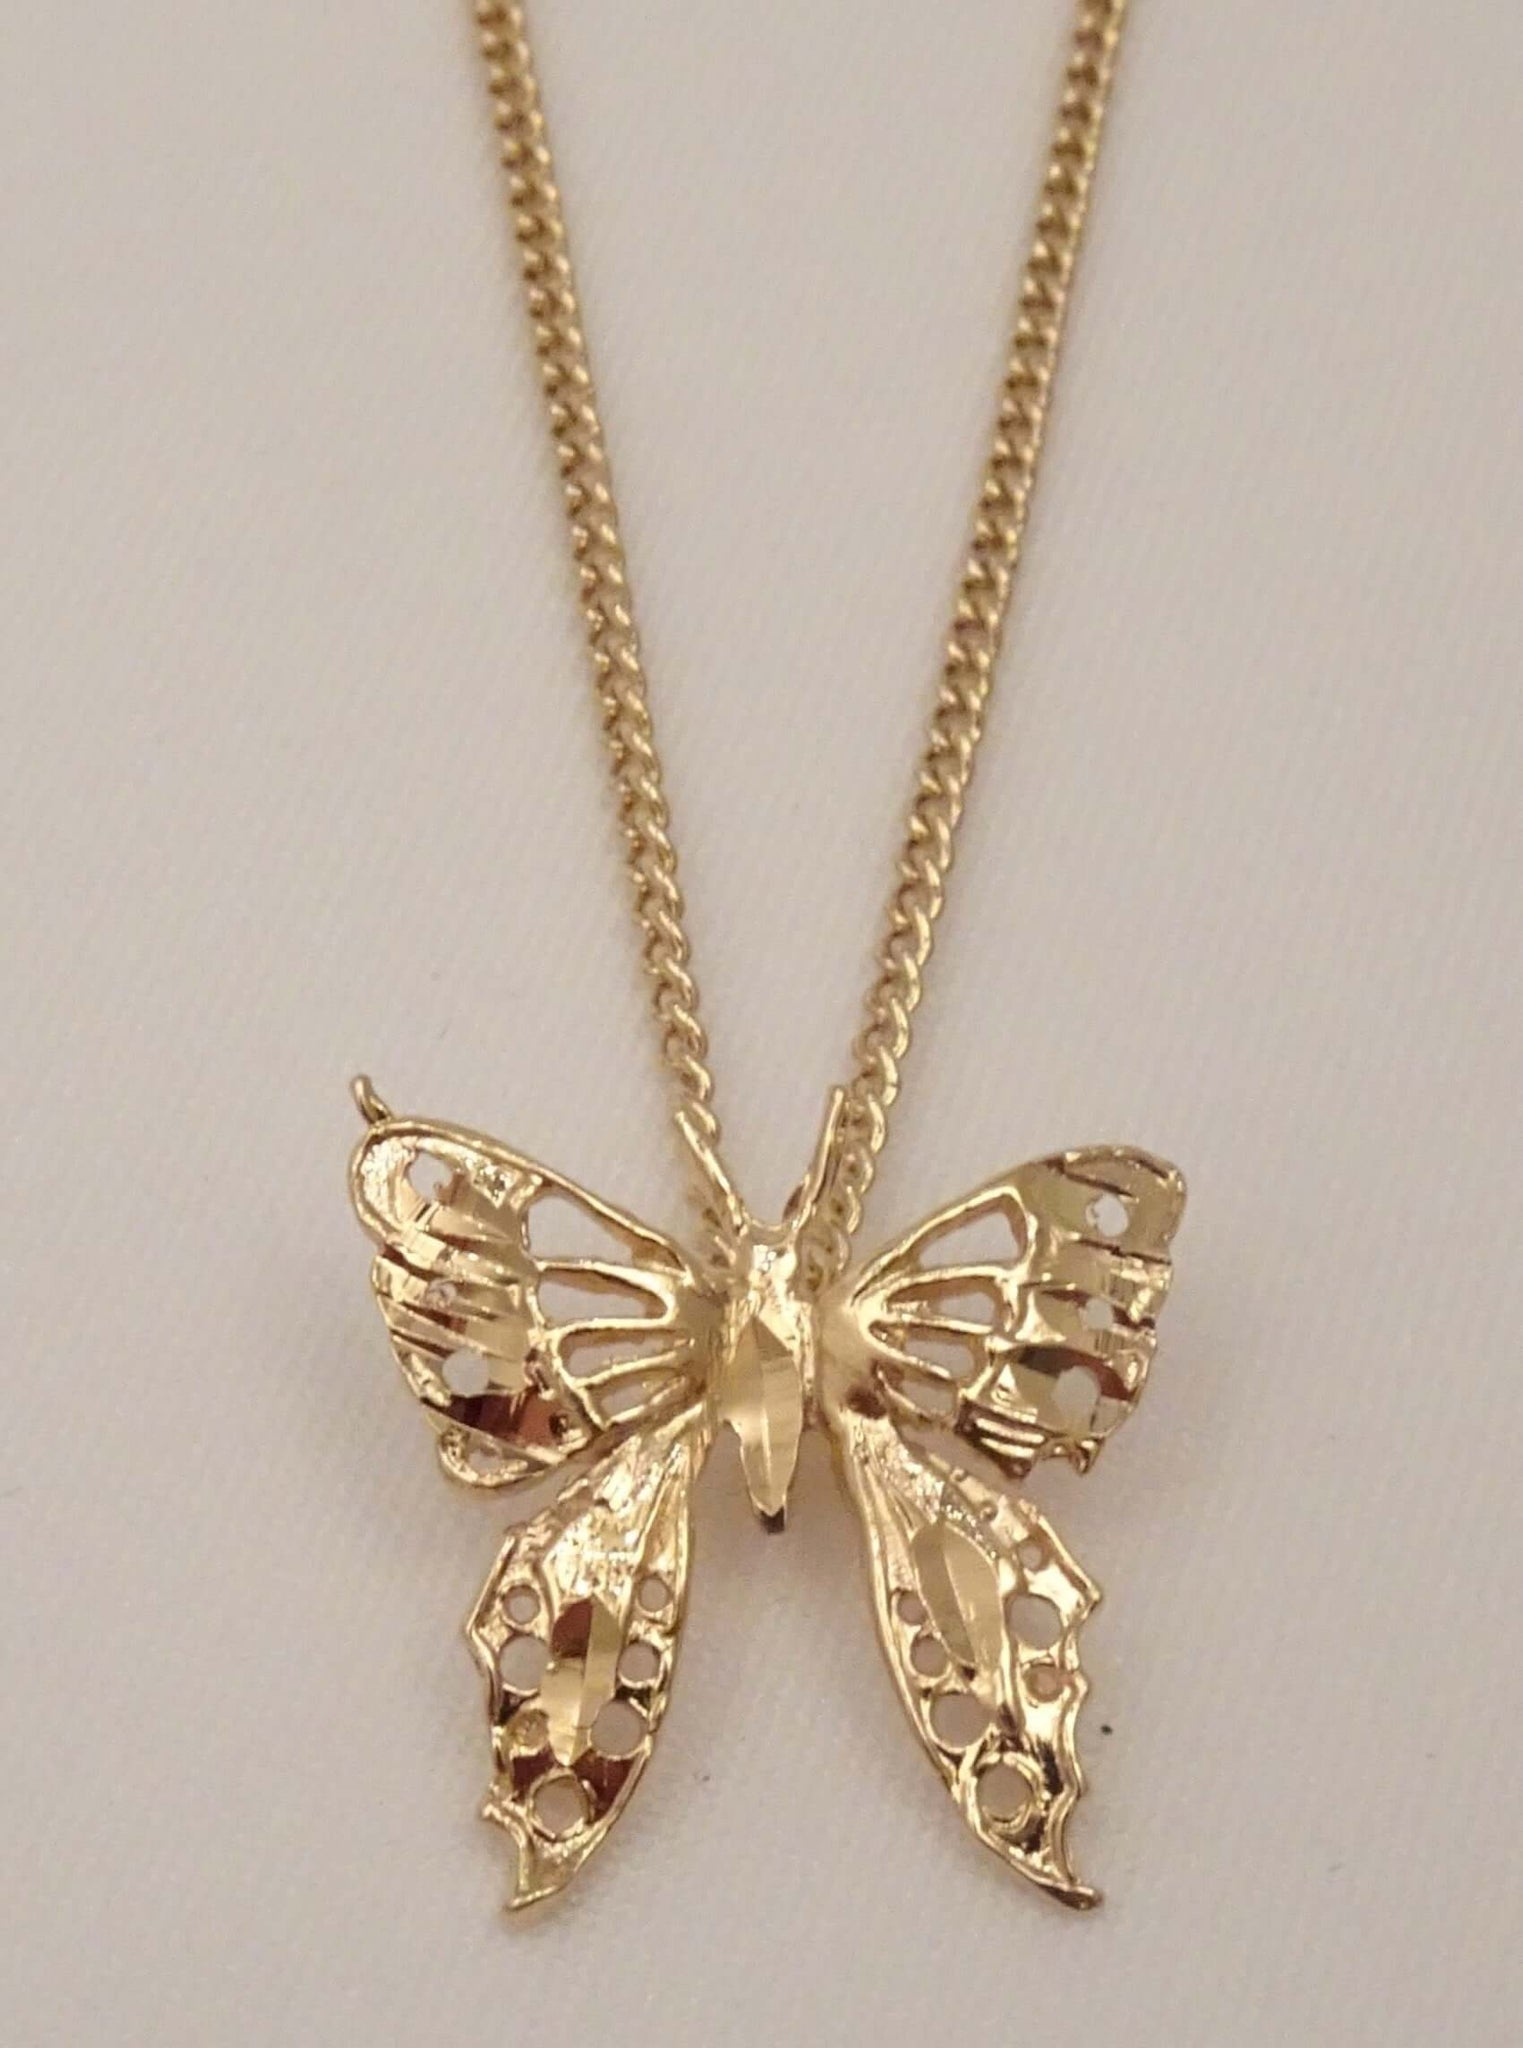 The Monarch Butterfly Necklace Sparrow